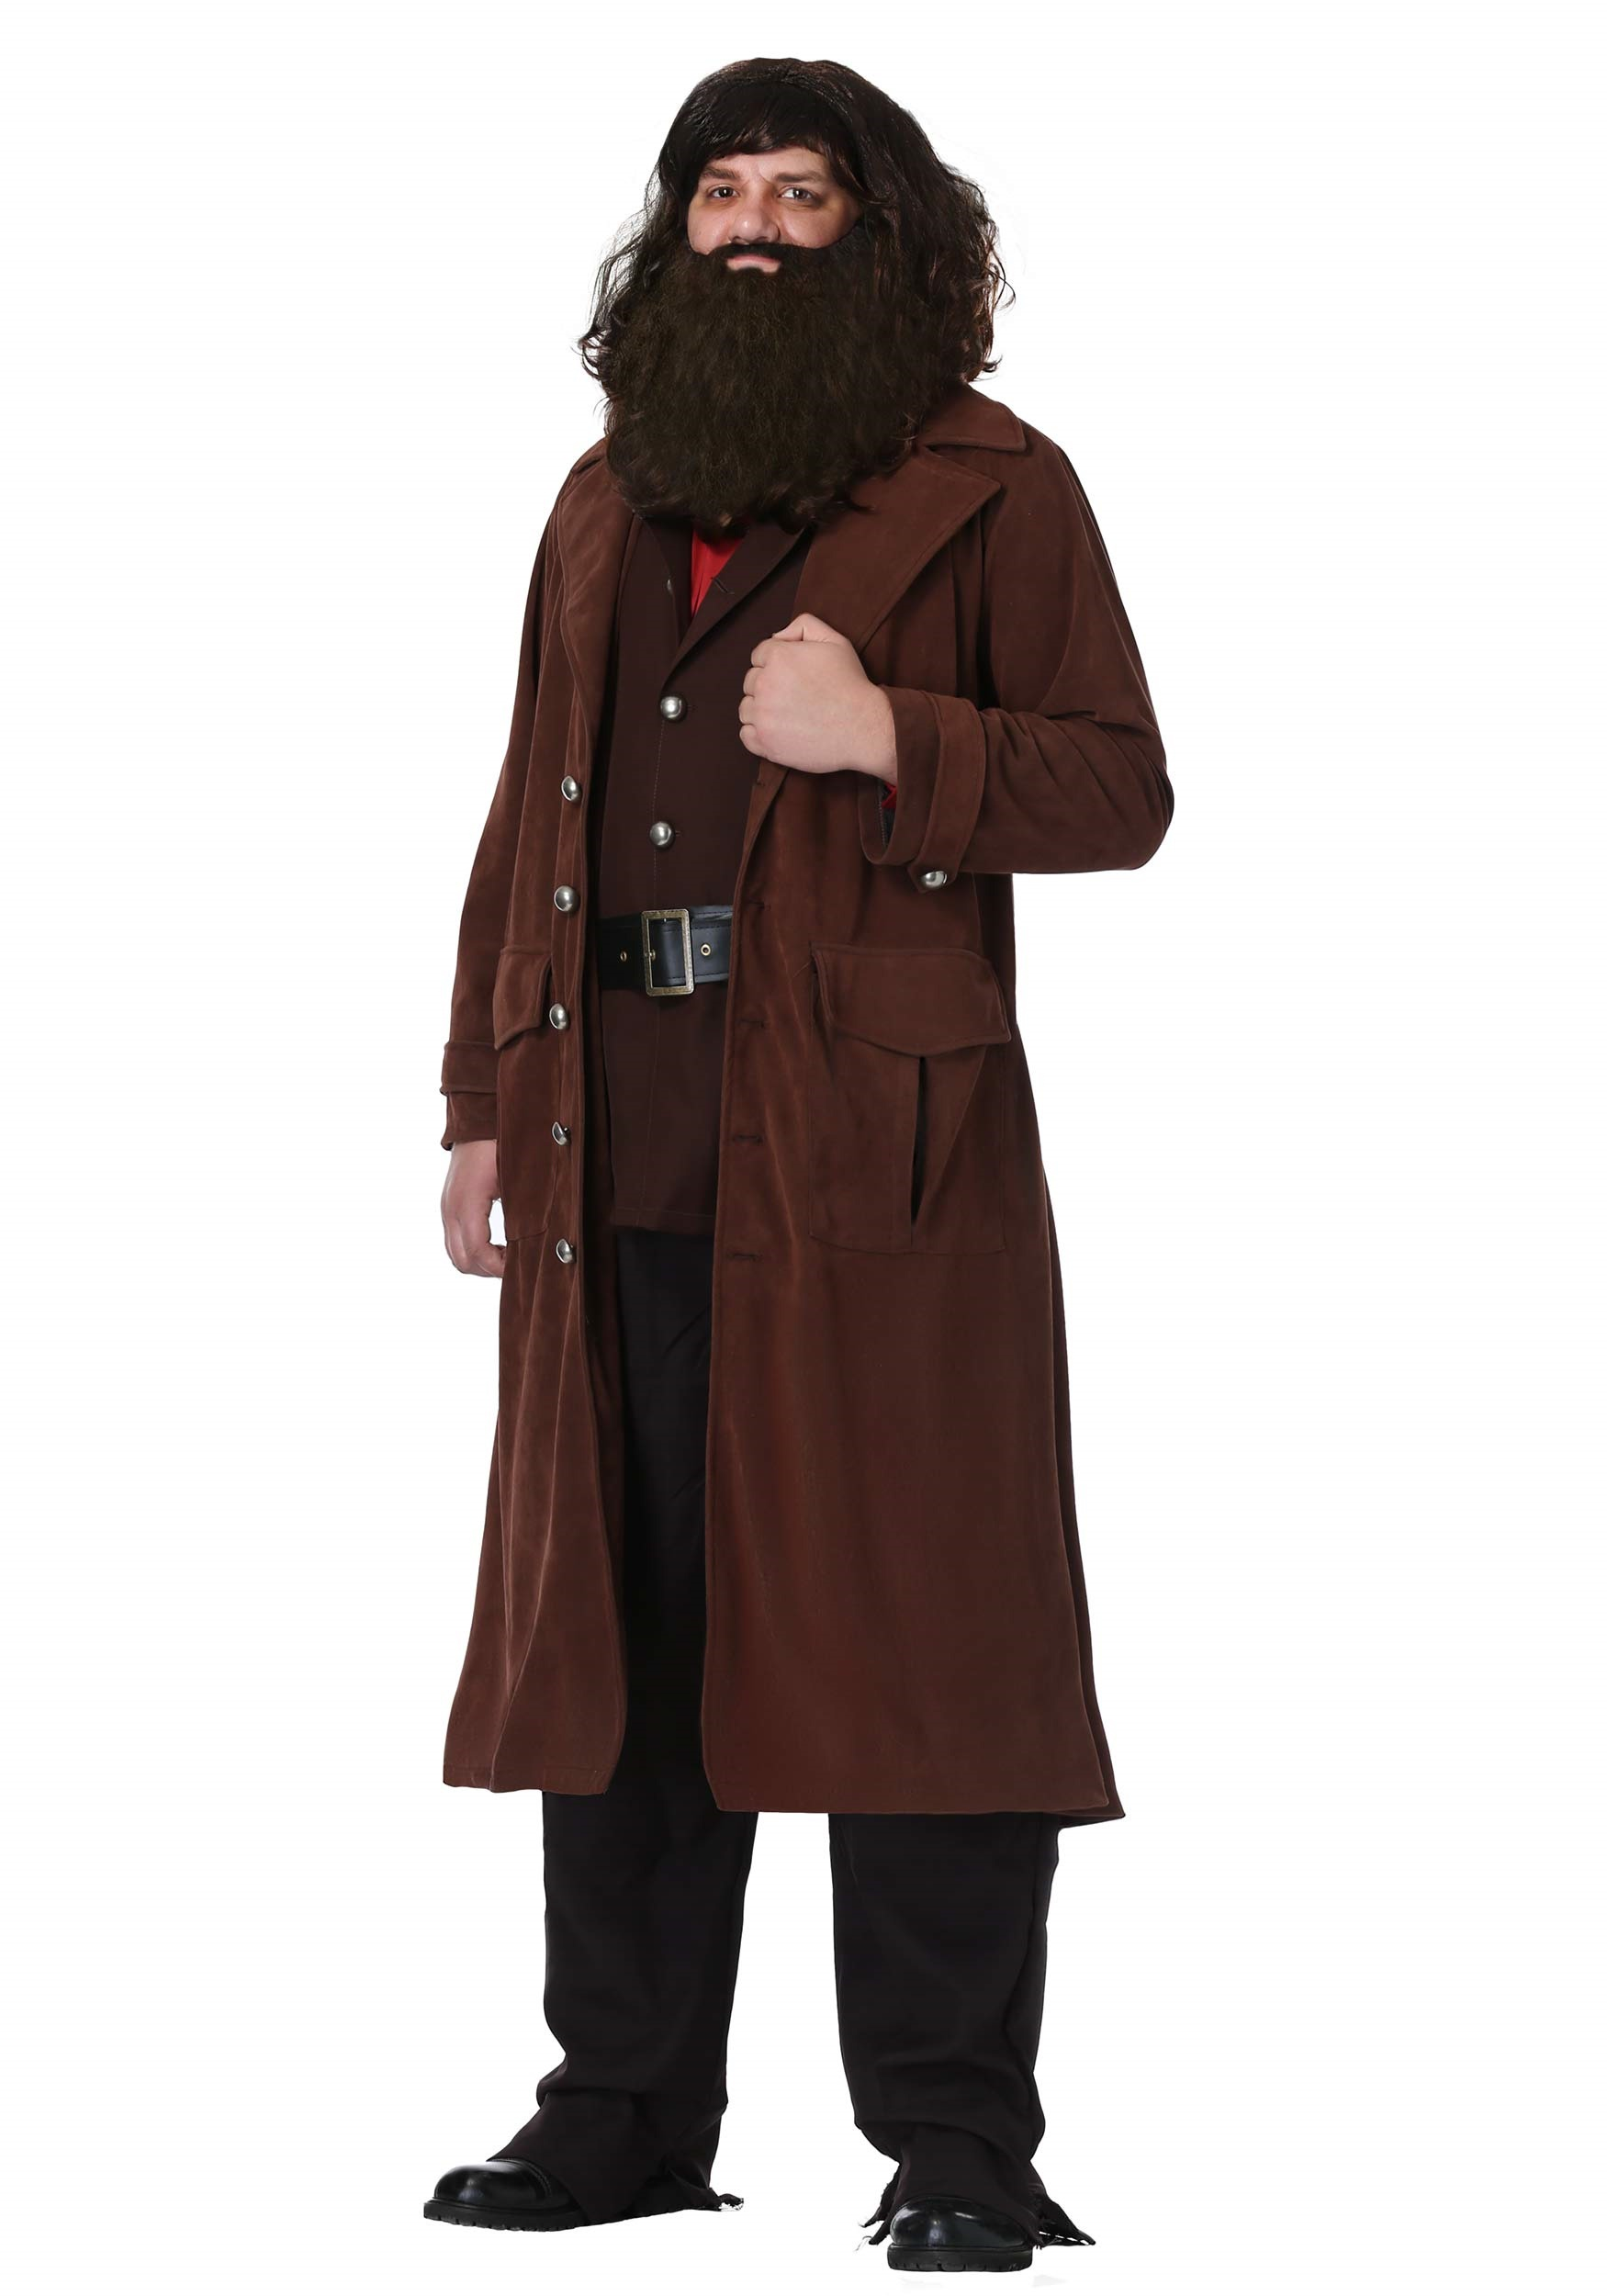 Harry potter costumes accessories halloweencostumes deluxe hagrid adult costume solutioingenieria